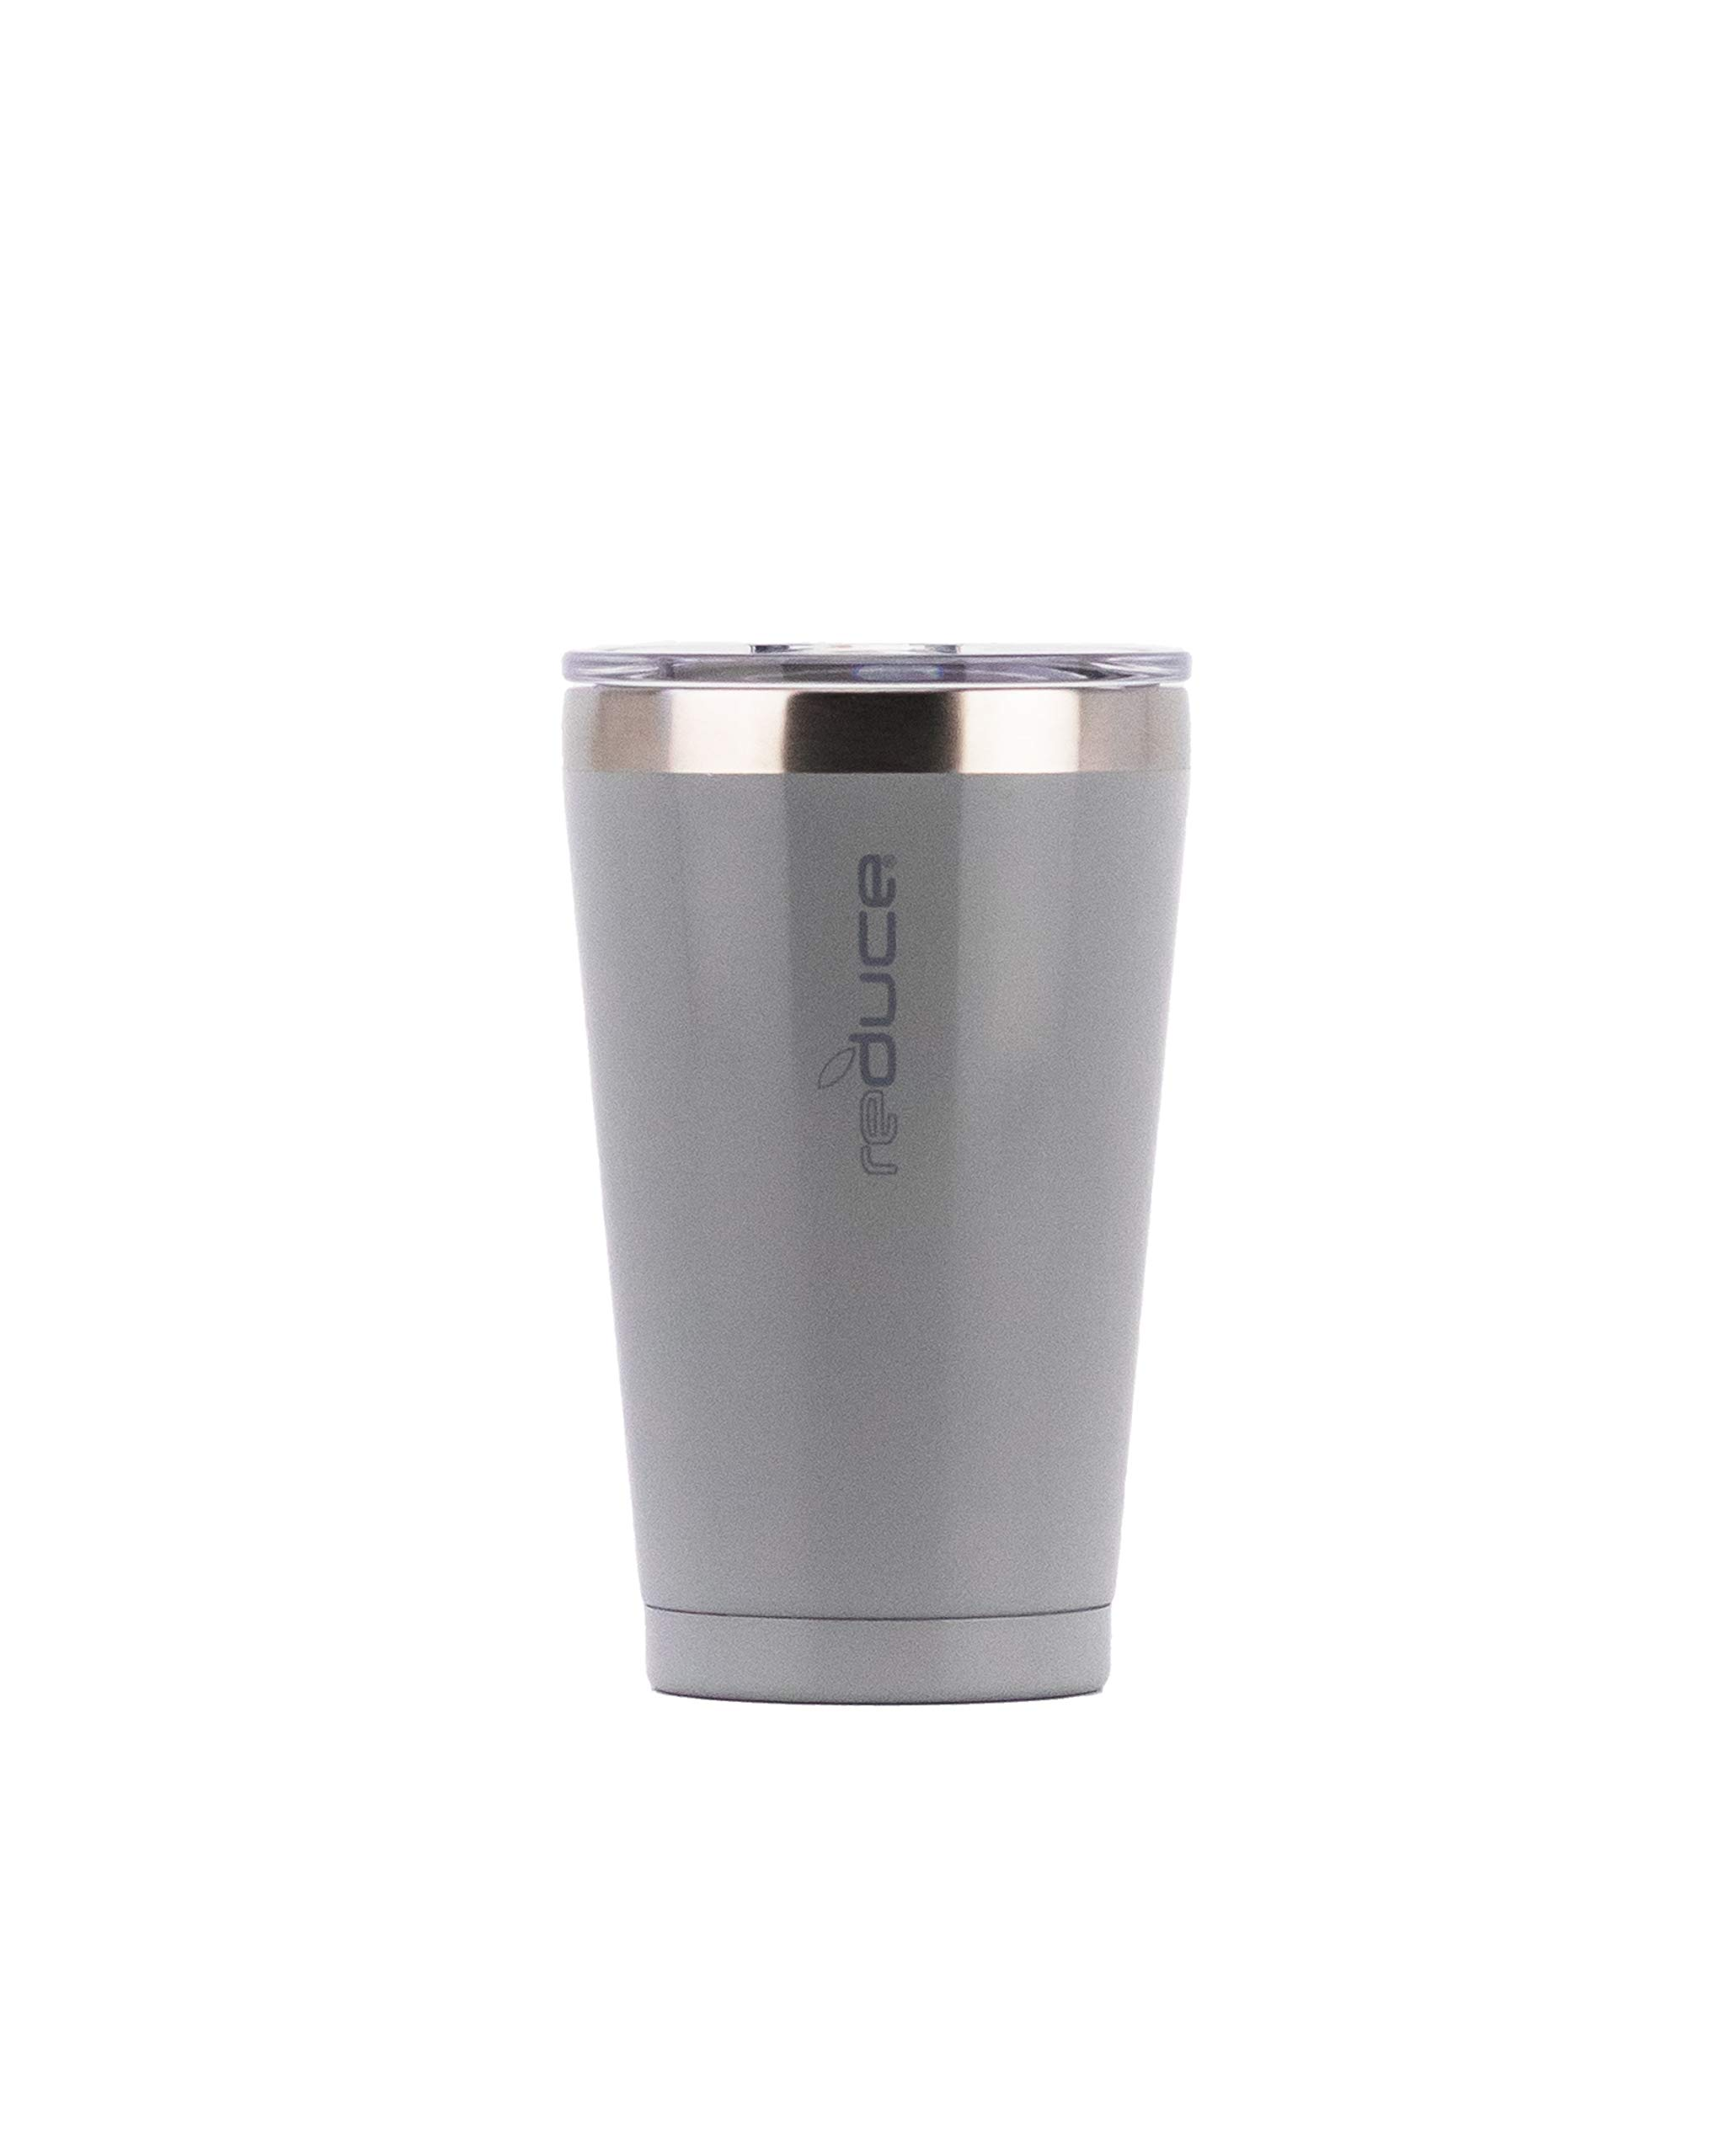 Reduce Insulated Tumbler Cup with Lid - Pint Size, Opaque Gloss Cool Mist, 16 oz, Keeps Drinks Hot/Cold - Stainless Steel, Ideal for Home/Travel - Fill with Coffee, Water, Beer, Soda